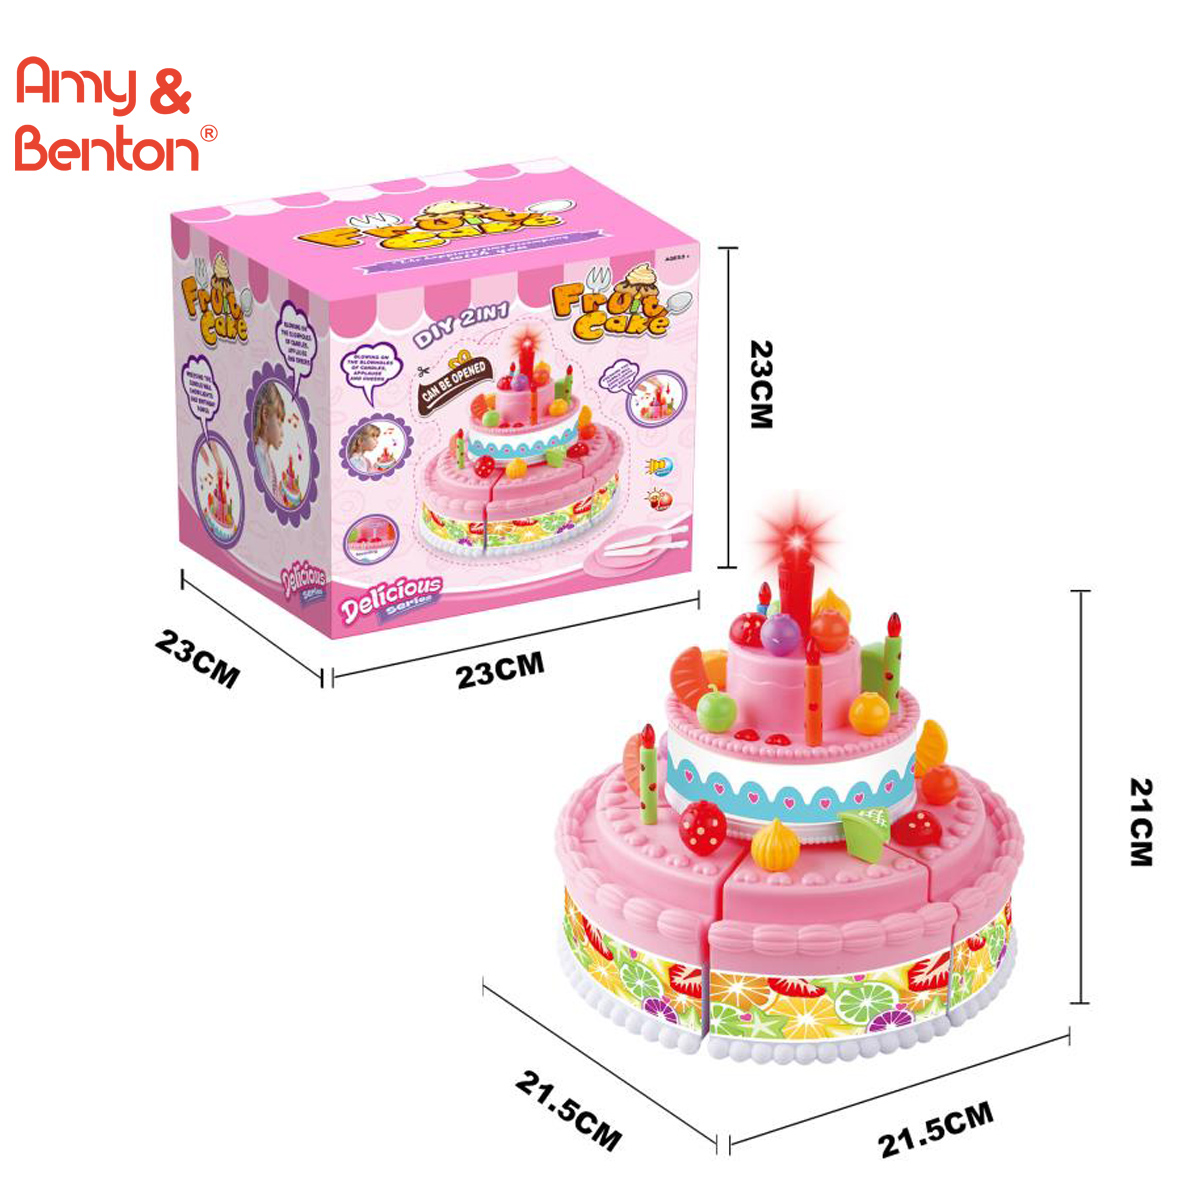 Magnificent Kids Birthday Cake Toy For Baby Toddlers With Counting Candles Personalised Birthday Cards Veneteletsinfo